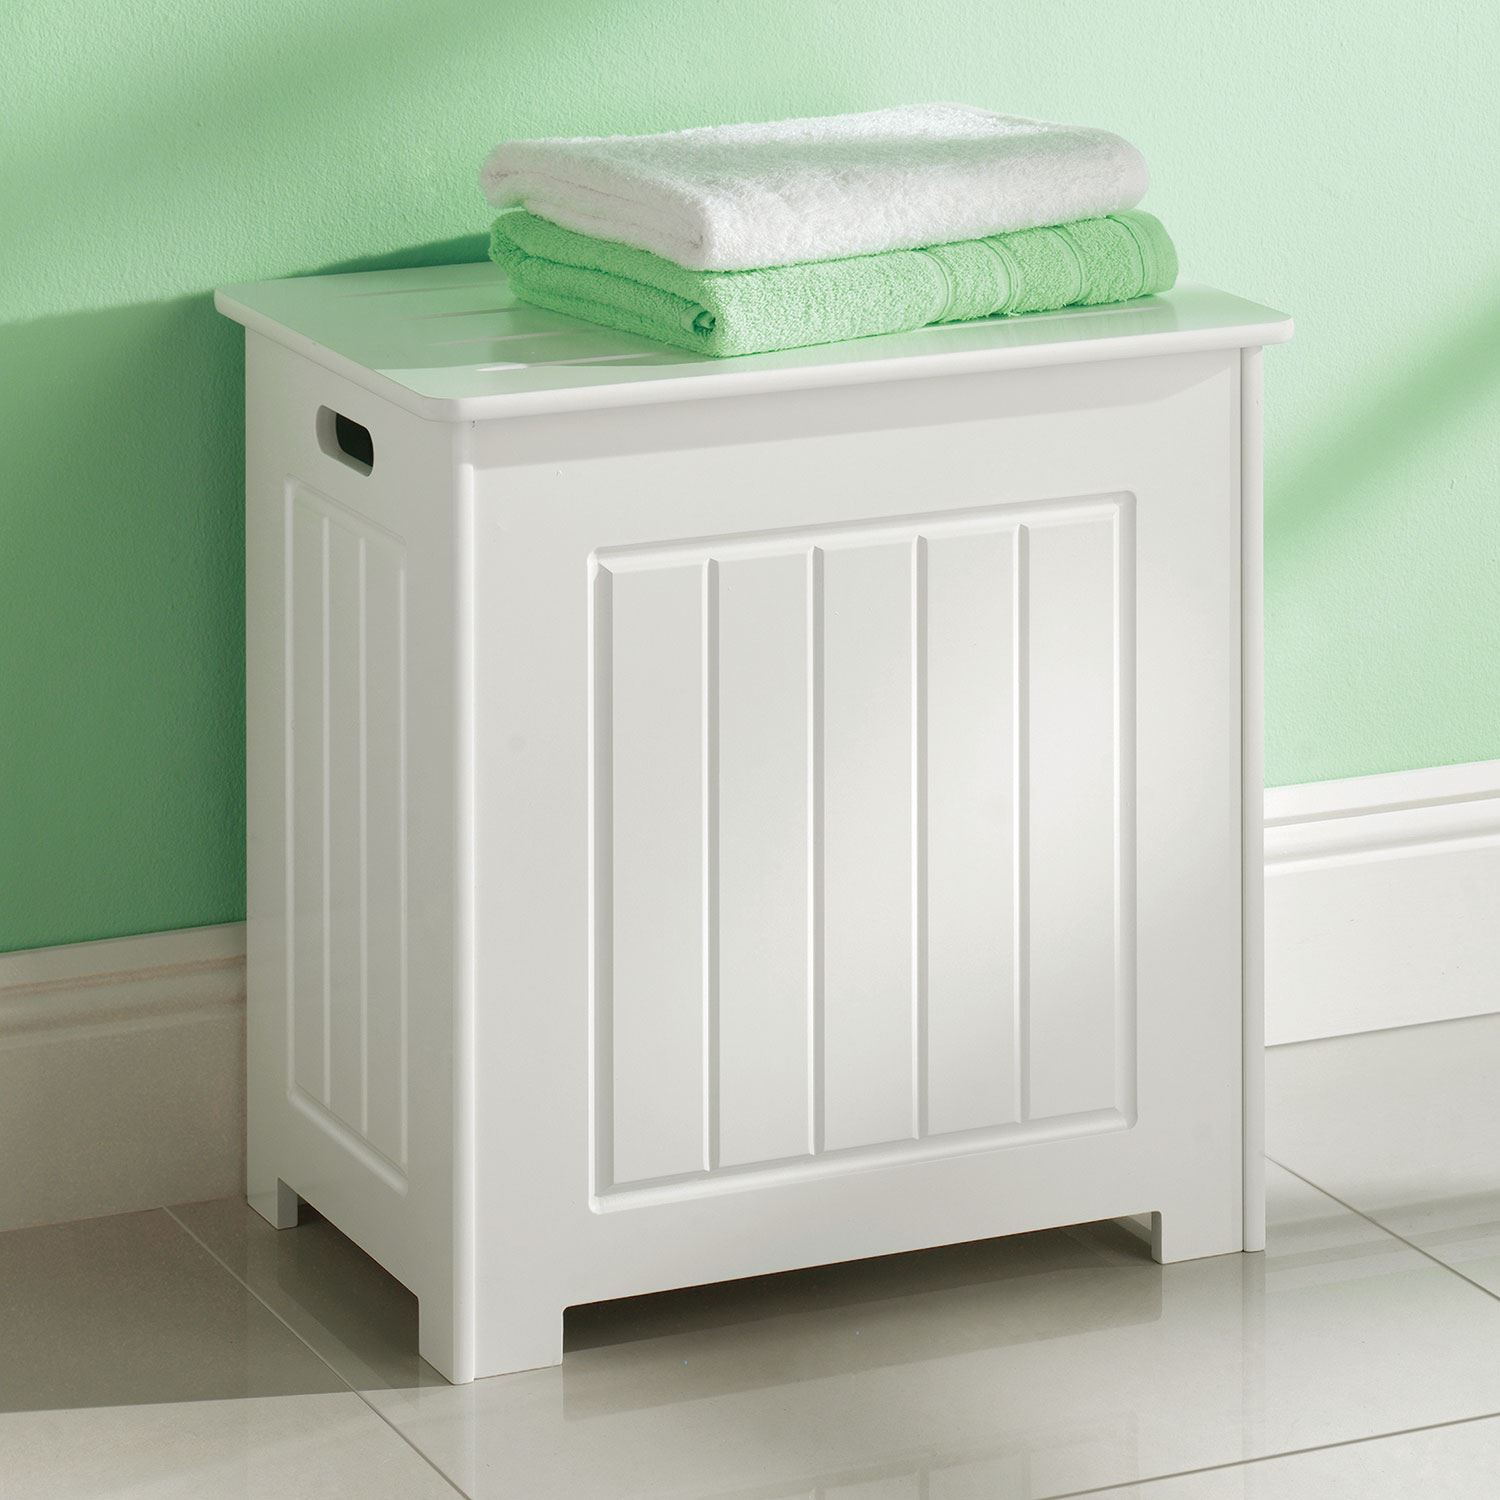 Details About Bathroom Laundry Storage Organiser Cabinet Chest Wooden White Laundry Basket New inside sizing 1500 X 1500